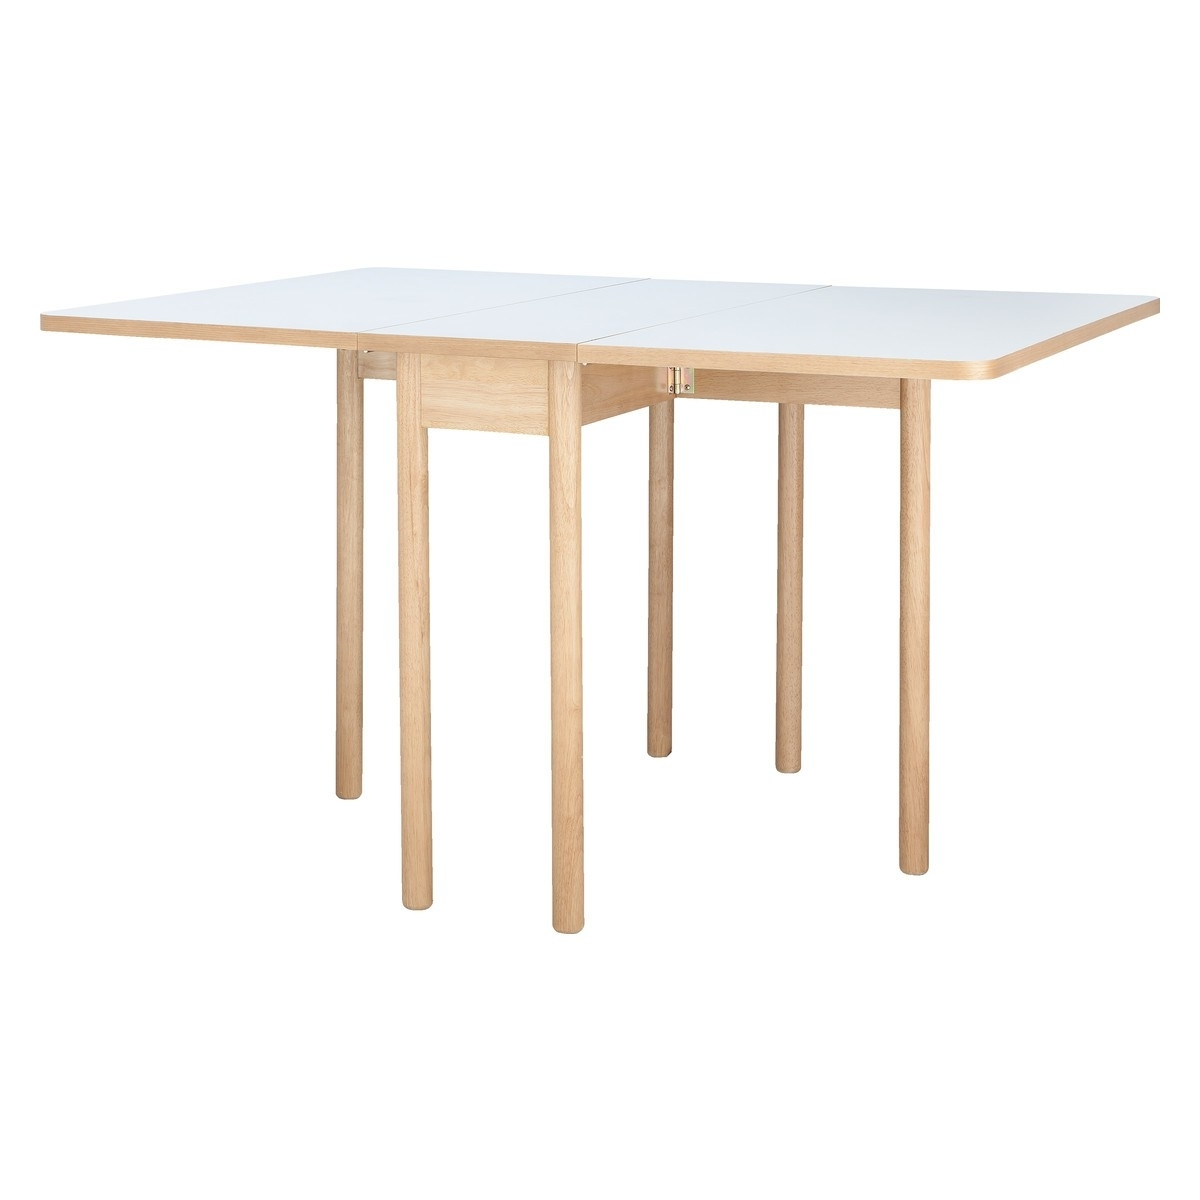 Well Liked Suki 2 6 Seat White Folding Dining Table Regarding Large Folding Dining Tables (View 24 of 25)